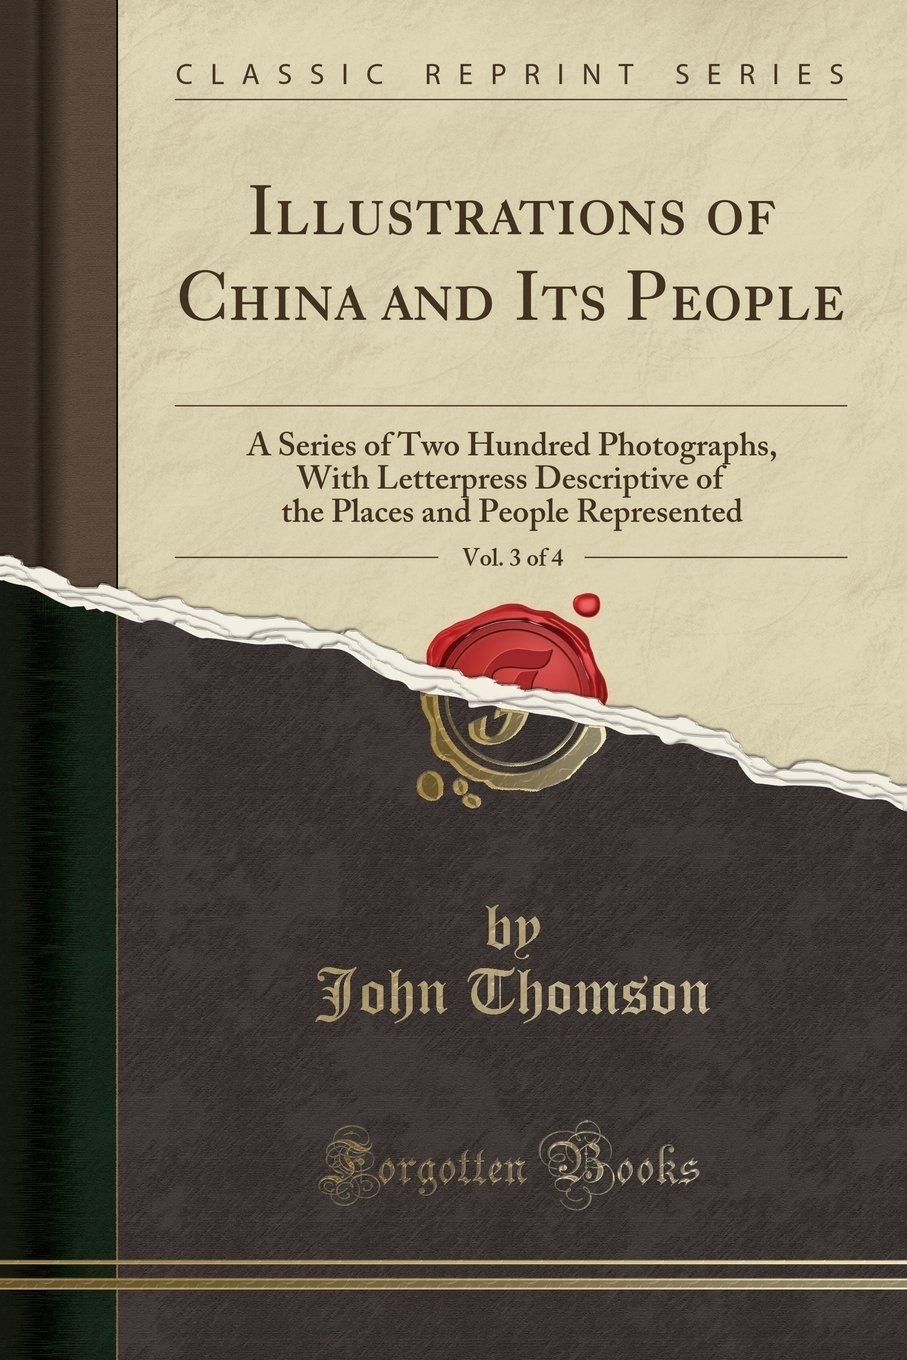 Read Online Illustrations of China and Its People, Vol. 3 of 4: A Series of Two Hundred Photographs, With Letterpress Descriptive of the Places and People Represented (Classic Reprint) pdf epub